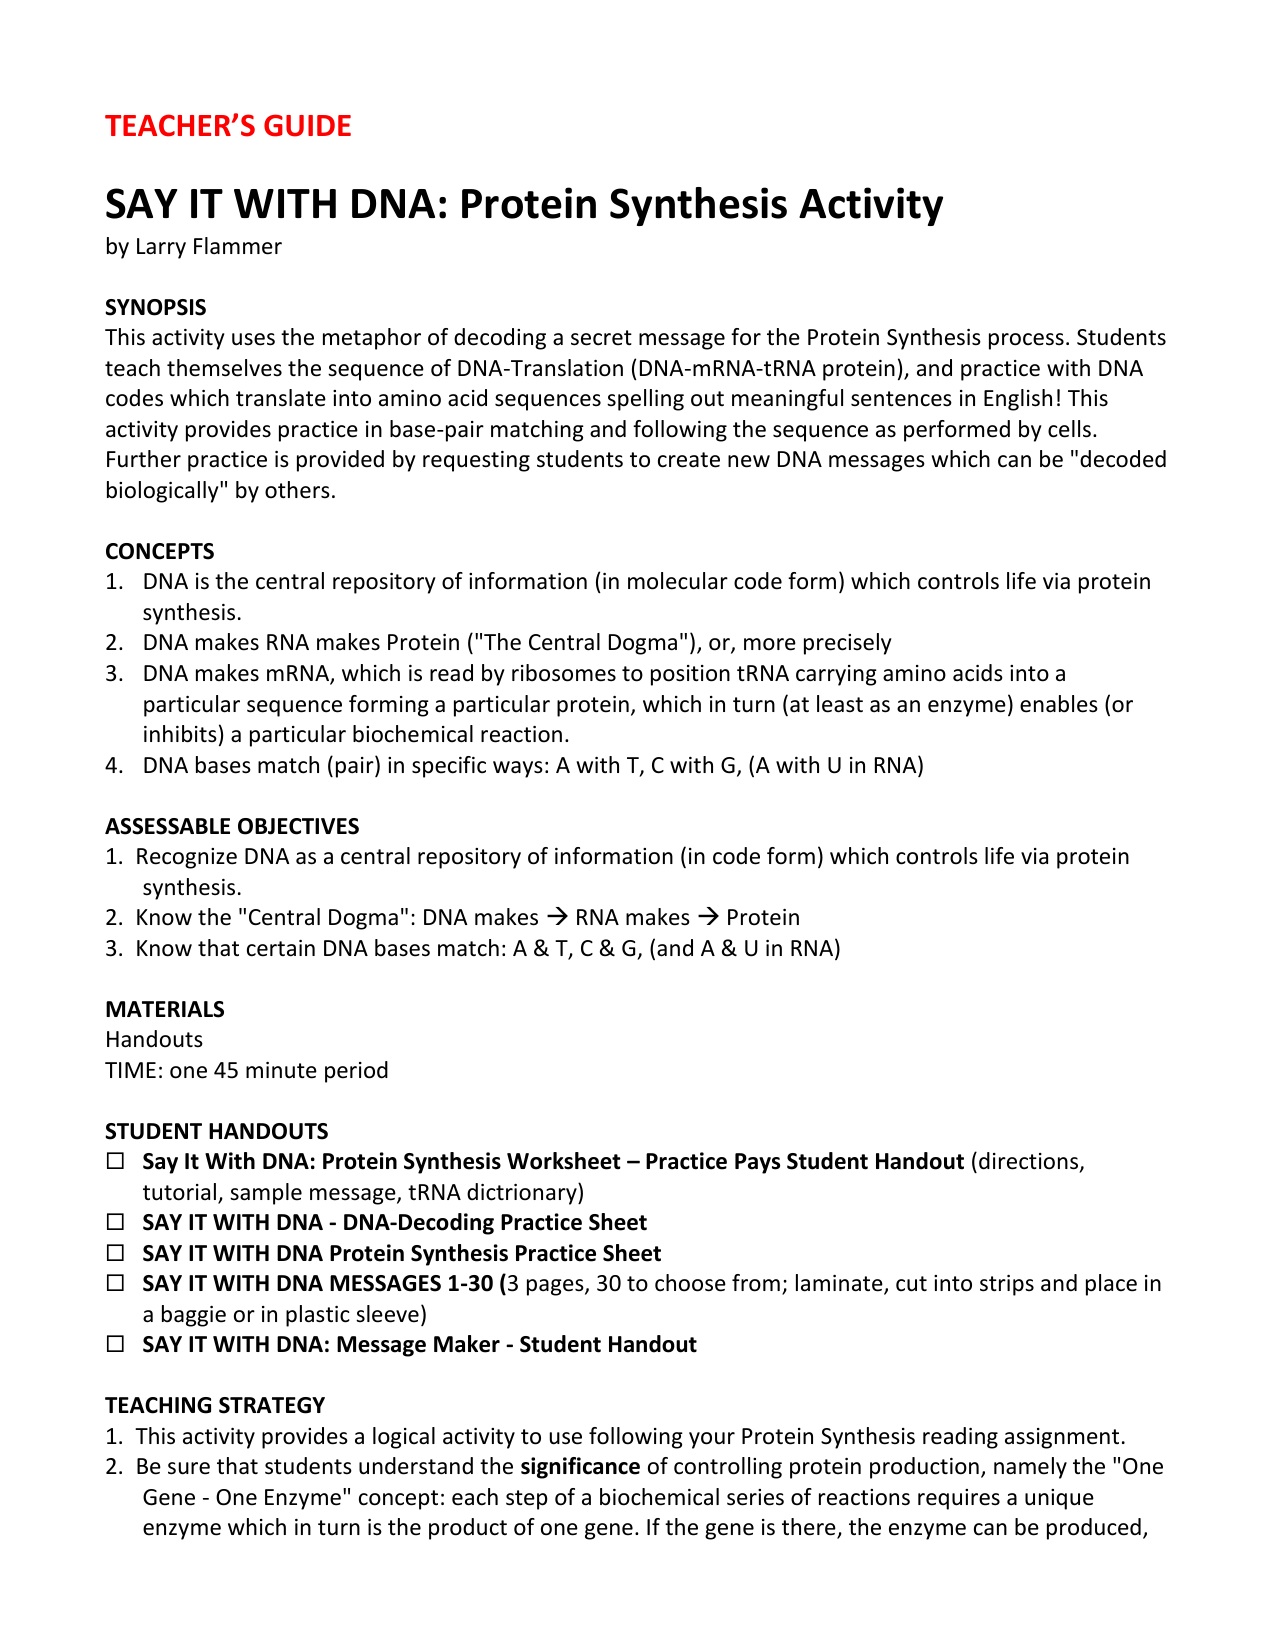 Say It With Dna Protein Synthesis Worksheet Practice